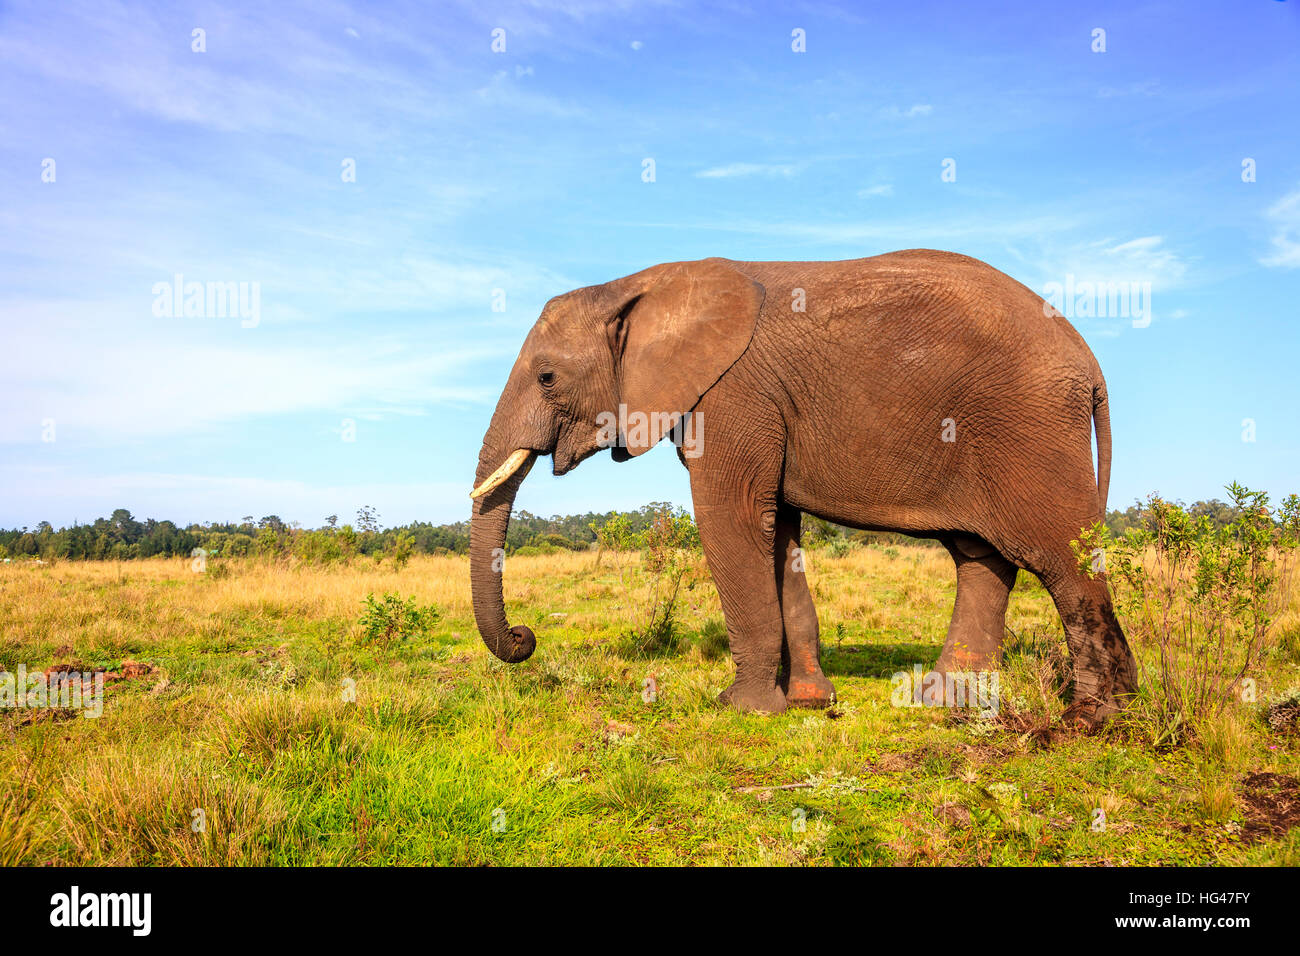 Young rescued elephant in Knysna Elephant Park, South Africa - Stock Image